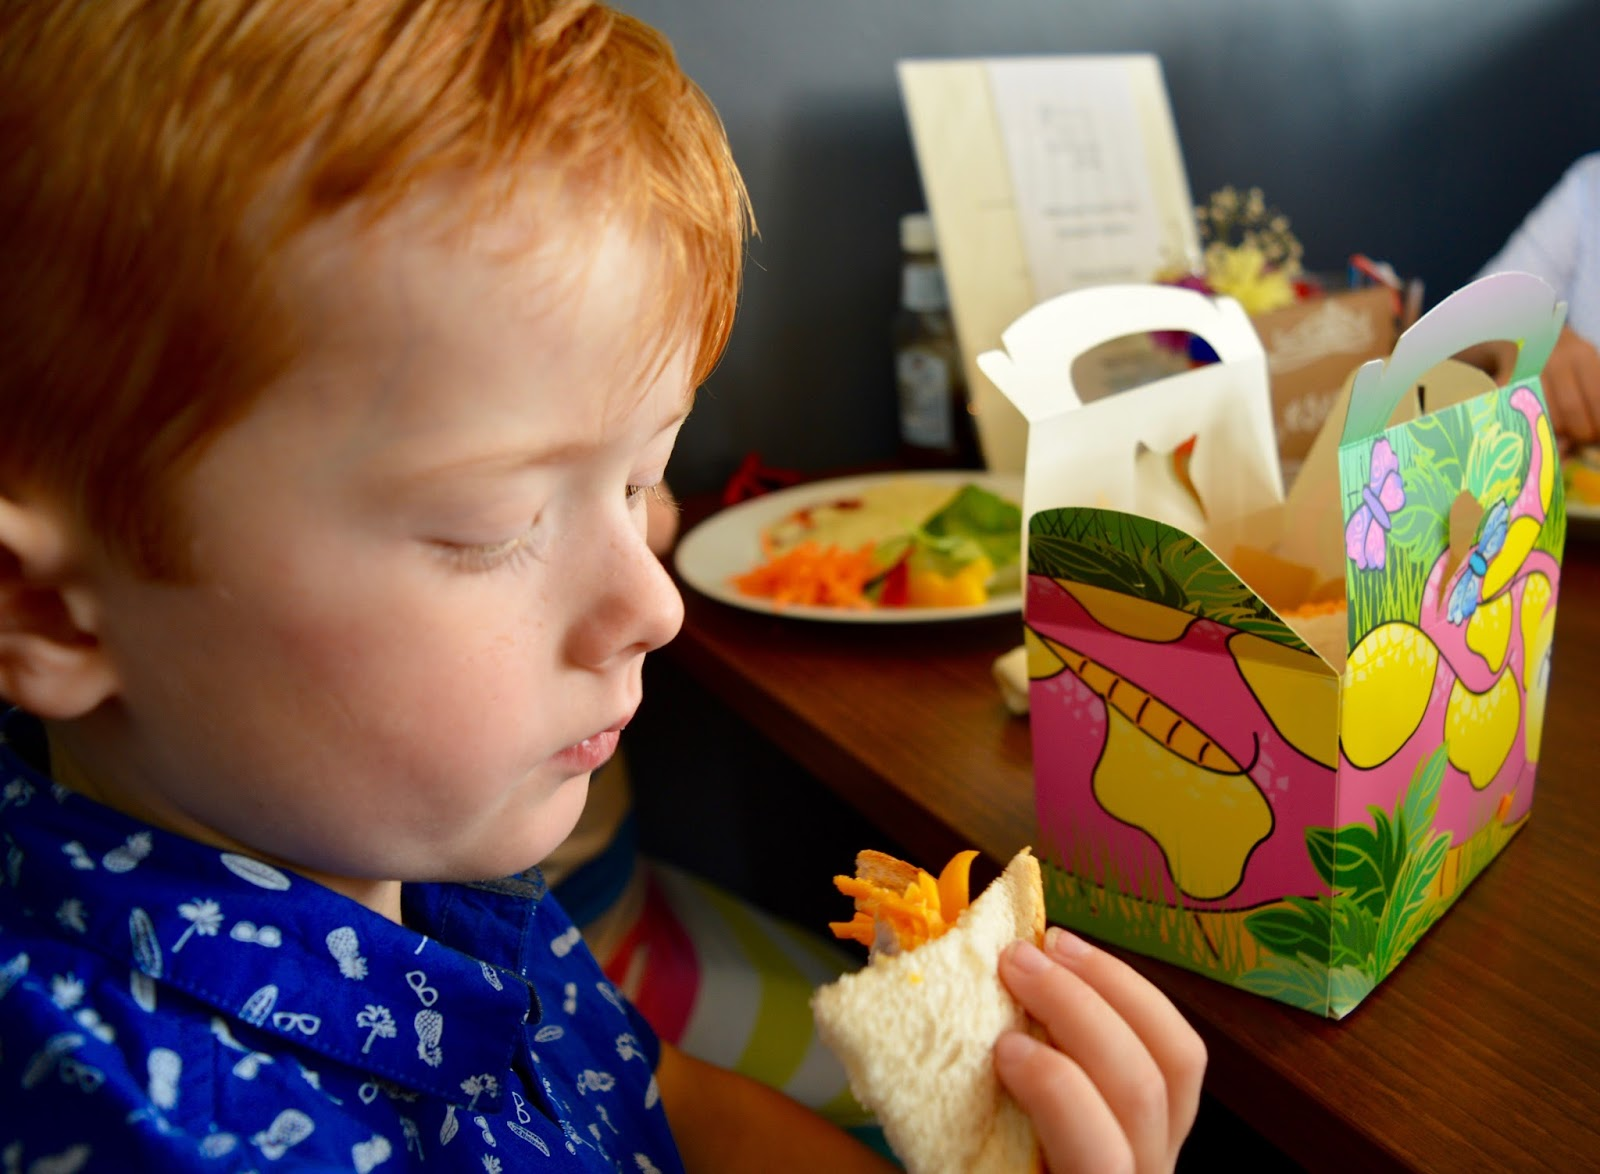 Cafe 32 | Linskill Centre, North Shields - A review - children's menu - lunchbox £2.50